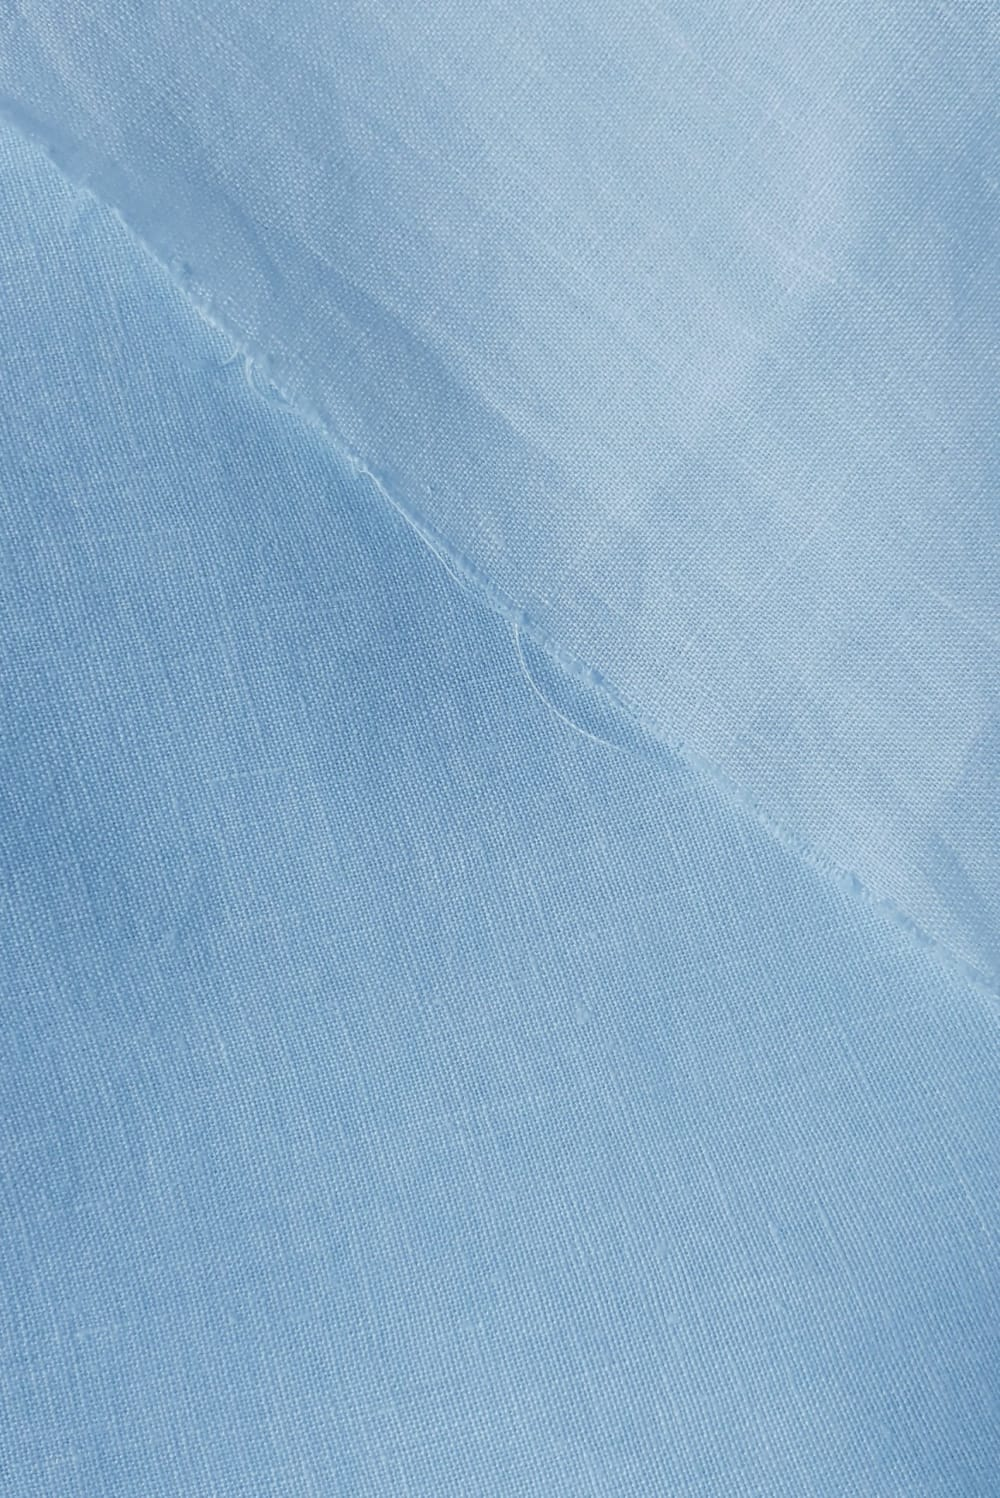 Close up of Dylon Vintage Blue shades on linen